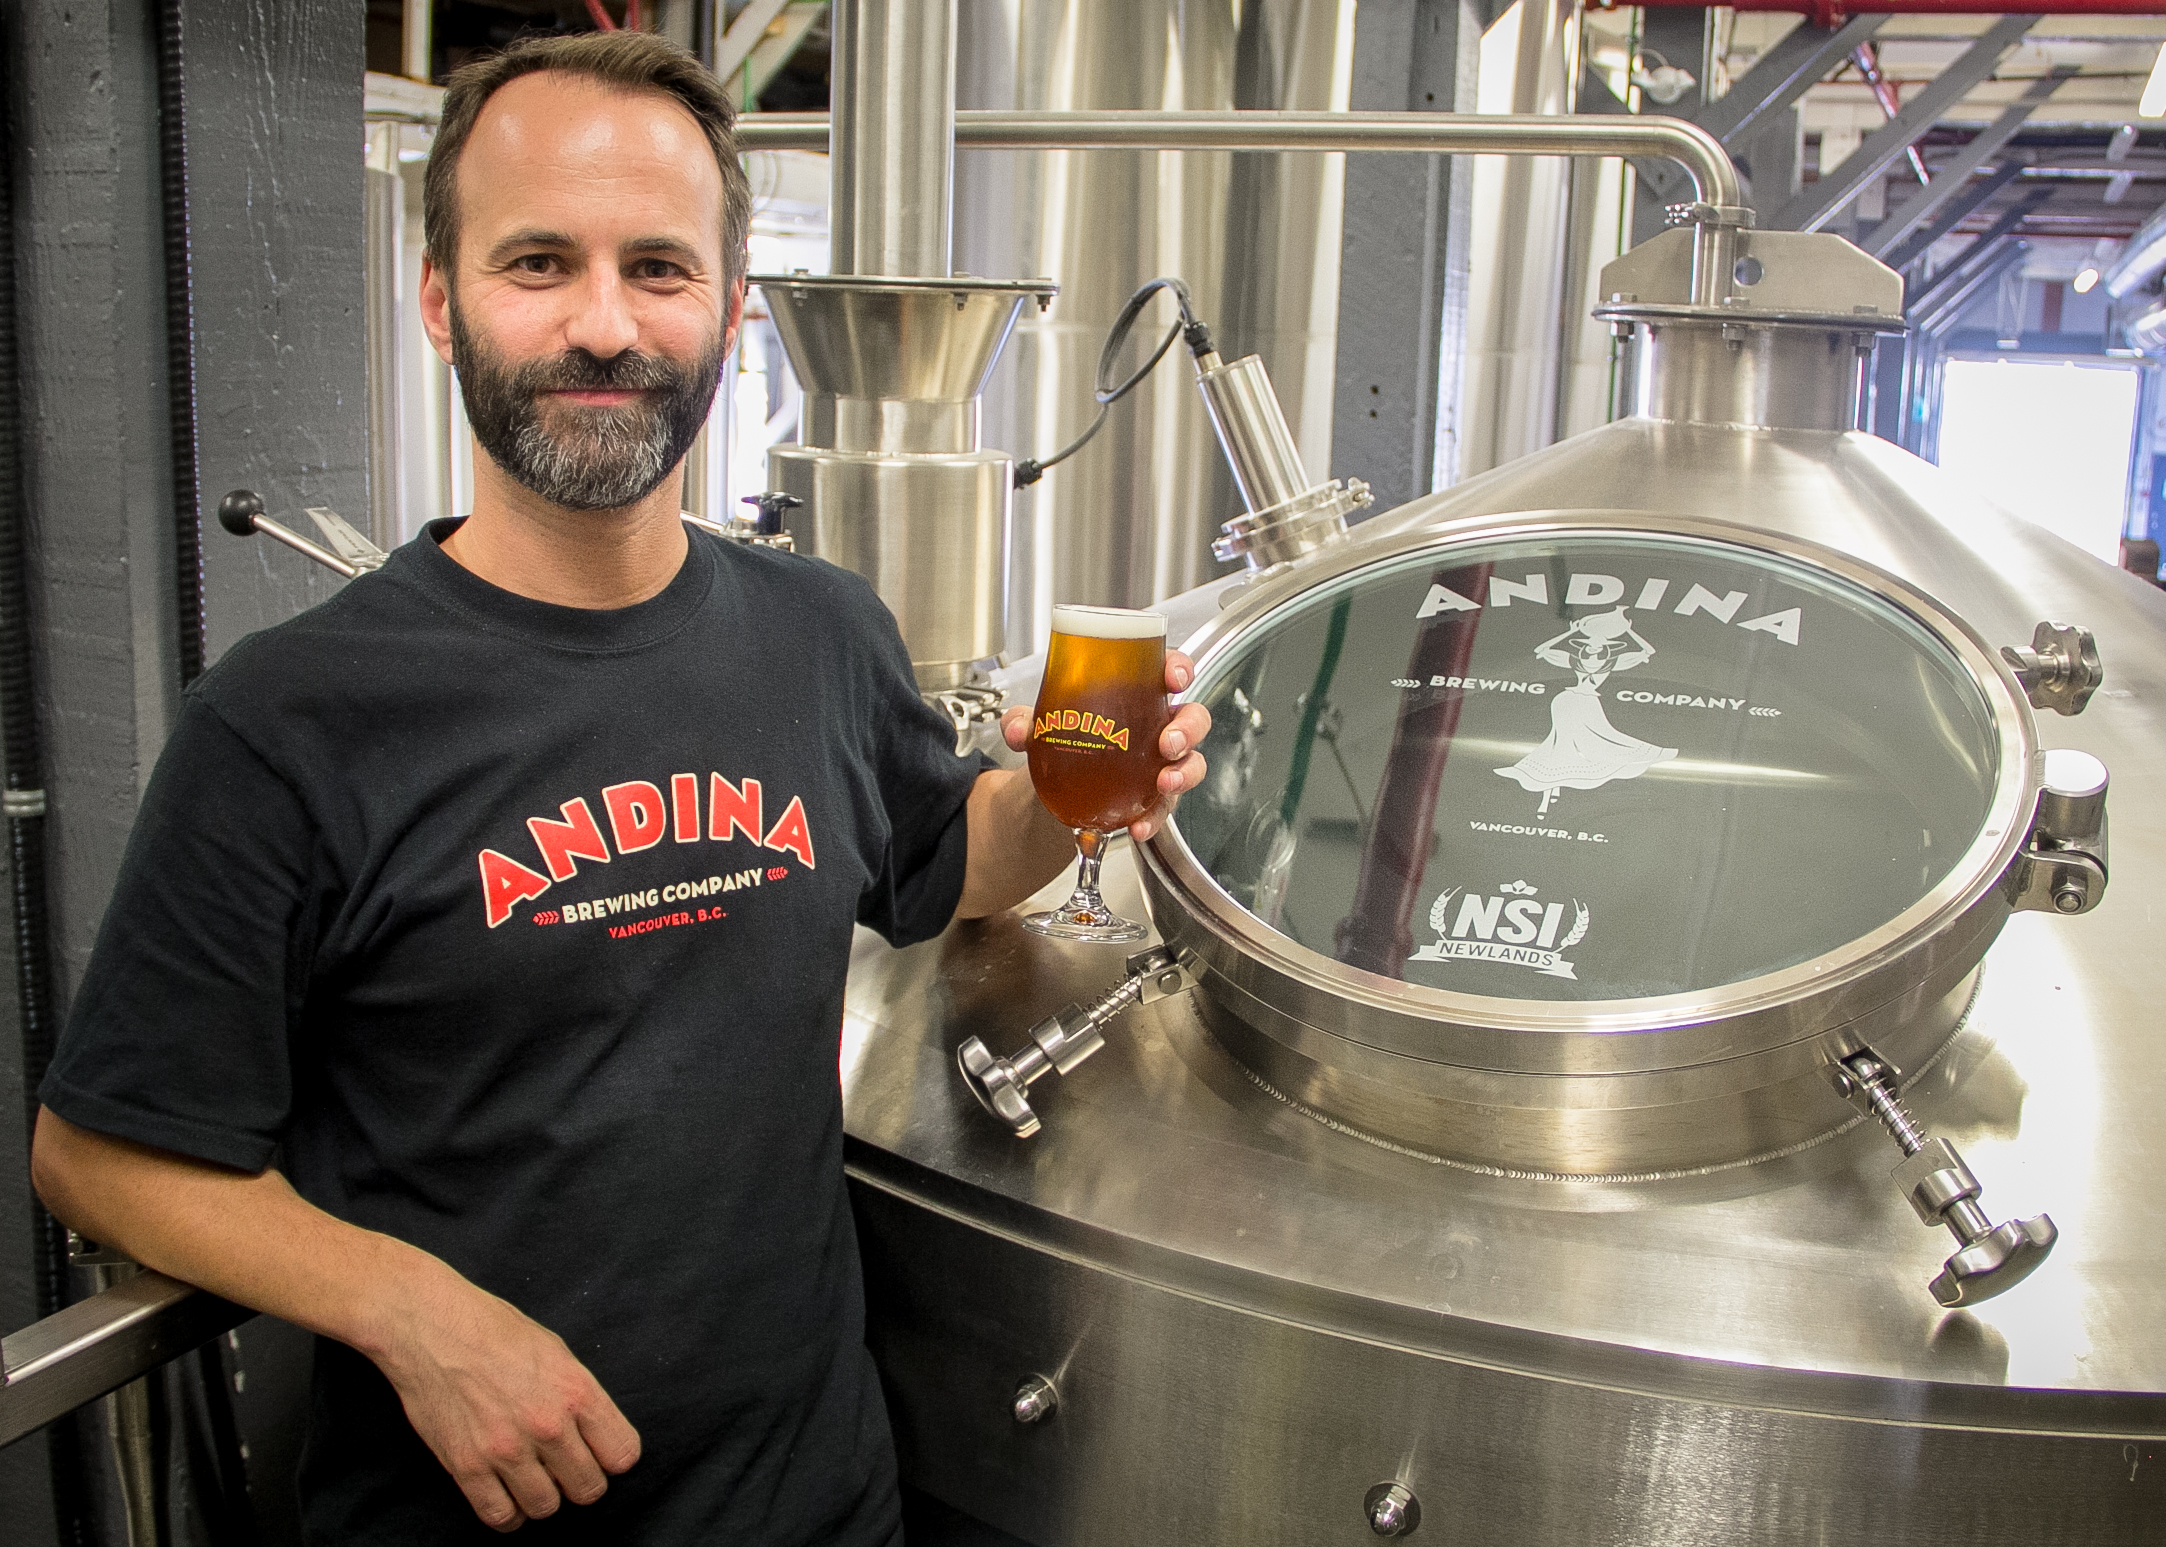 In Profile: Ben Greenberg & Andina Brewing Co.